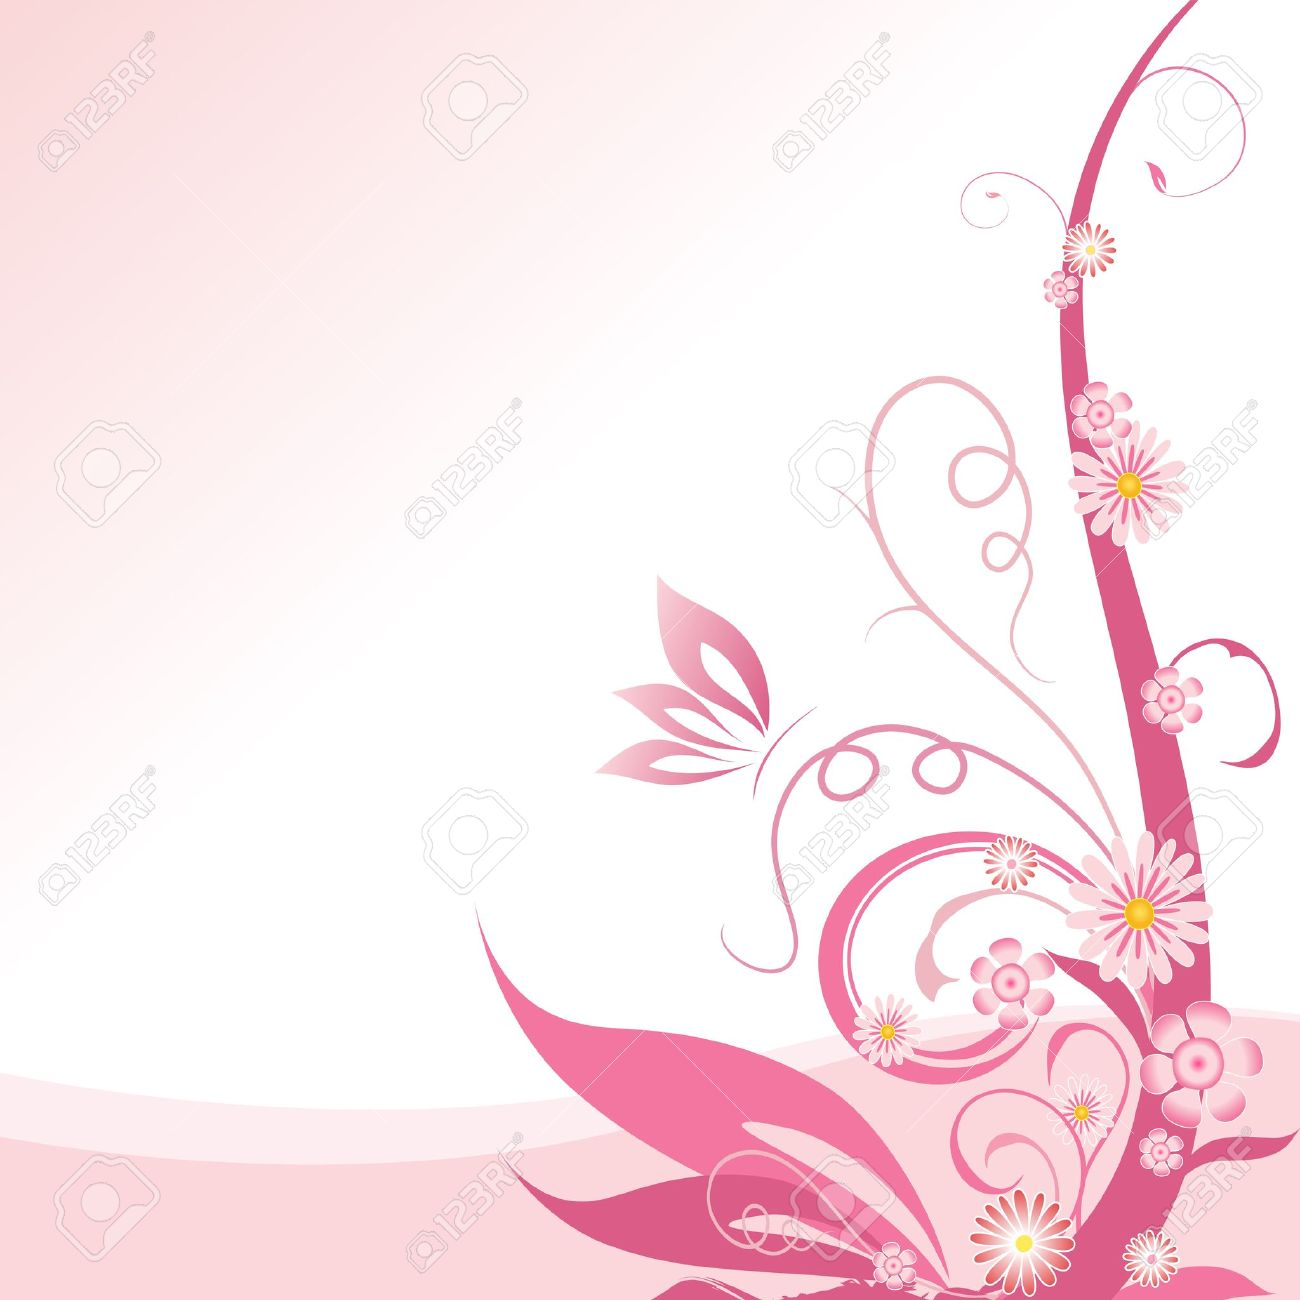 Pink floral designs yolarnetonic pink floral designs mightylinksfo